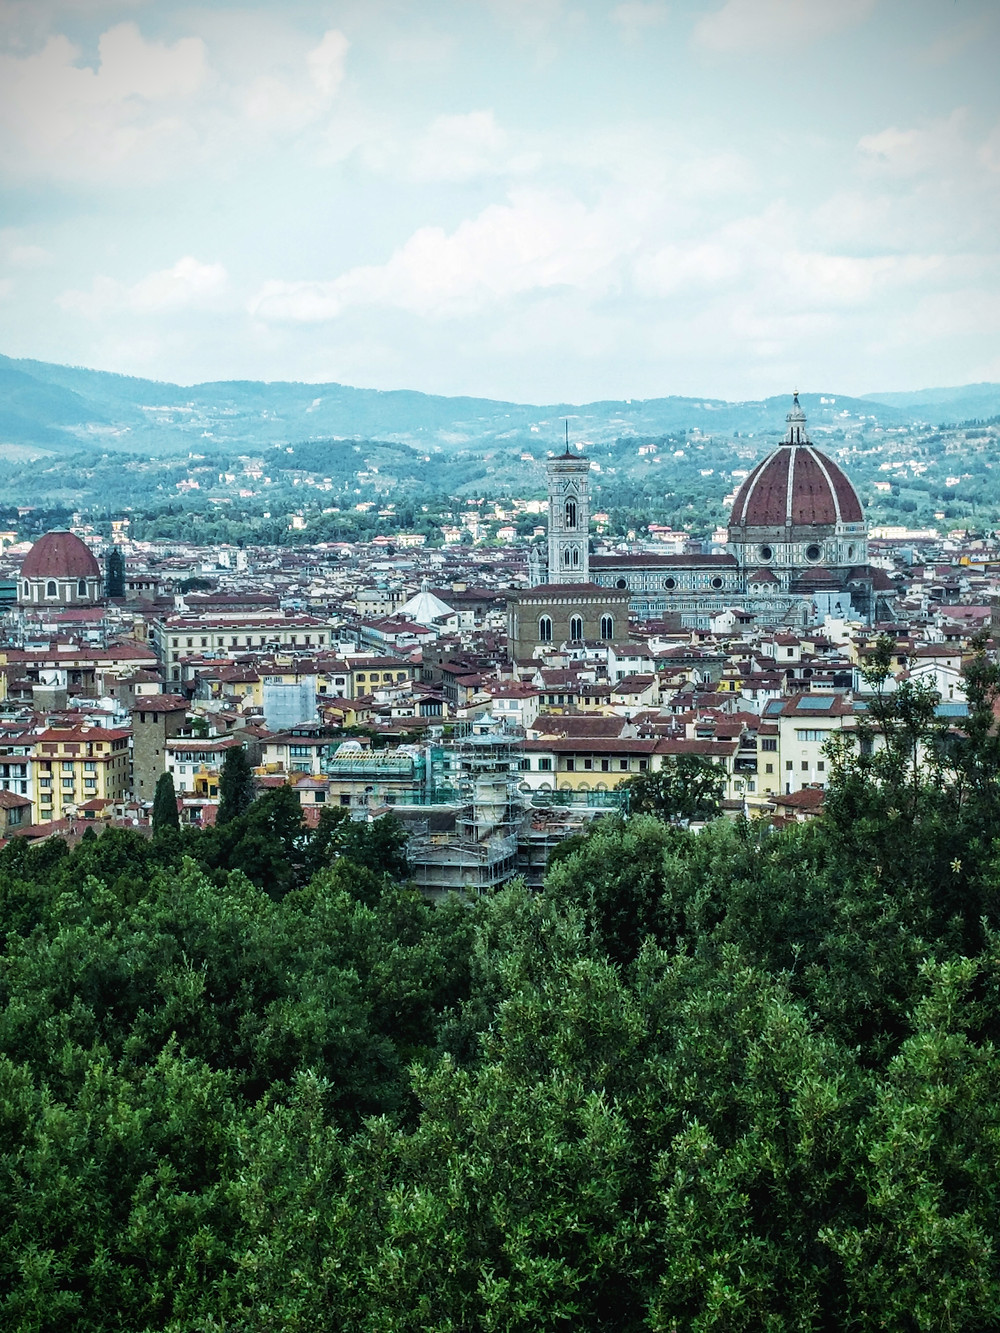 Fort Belvidere (Florence, Italy)